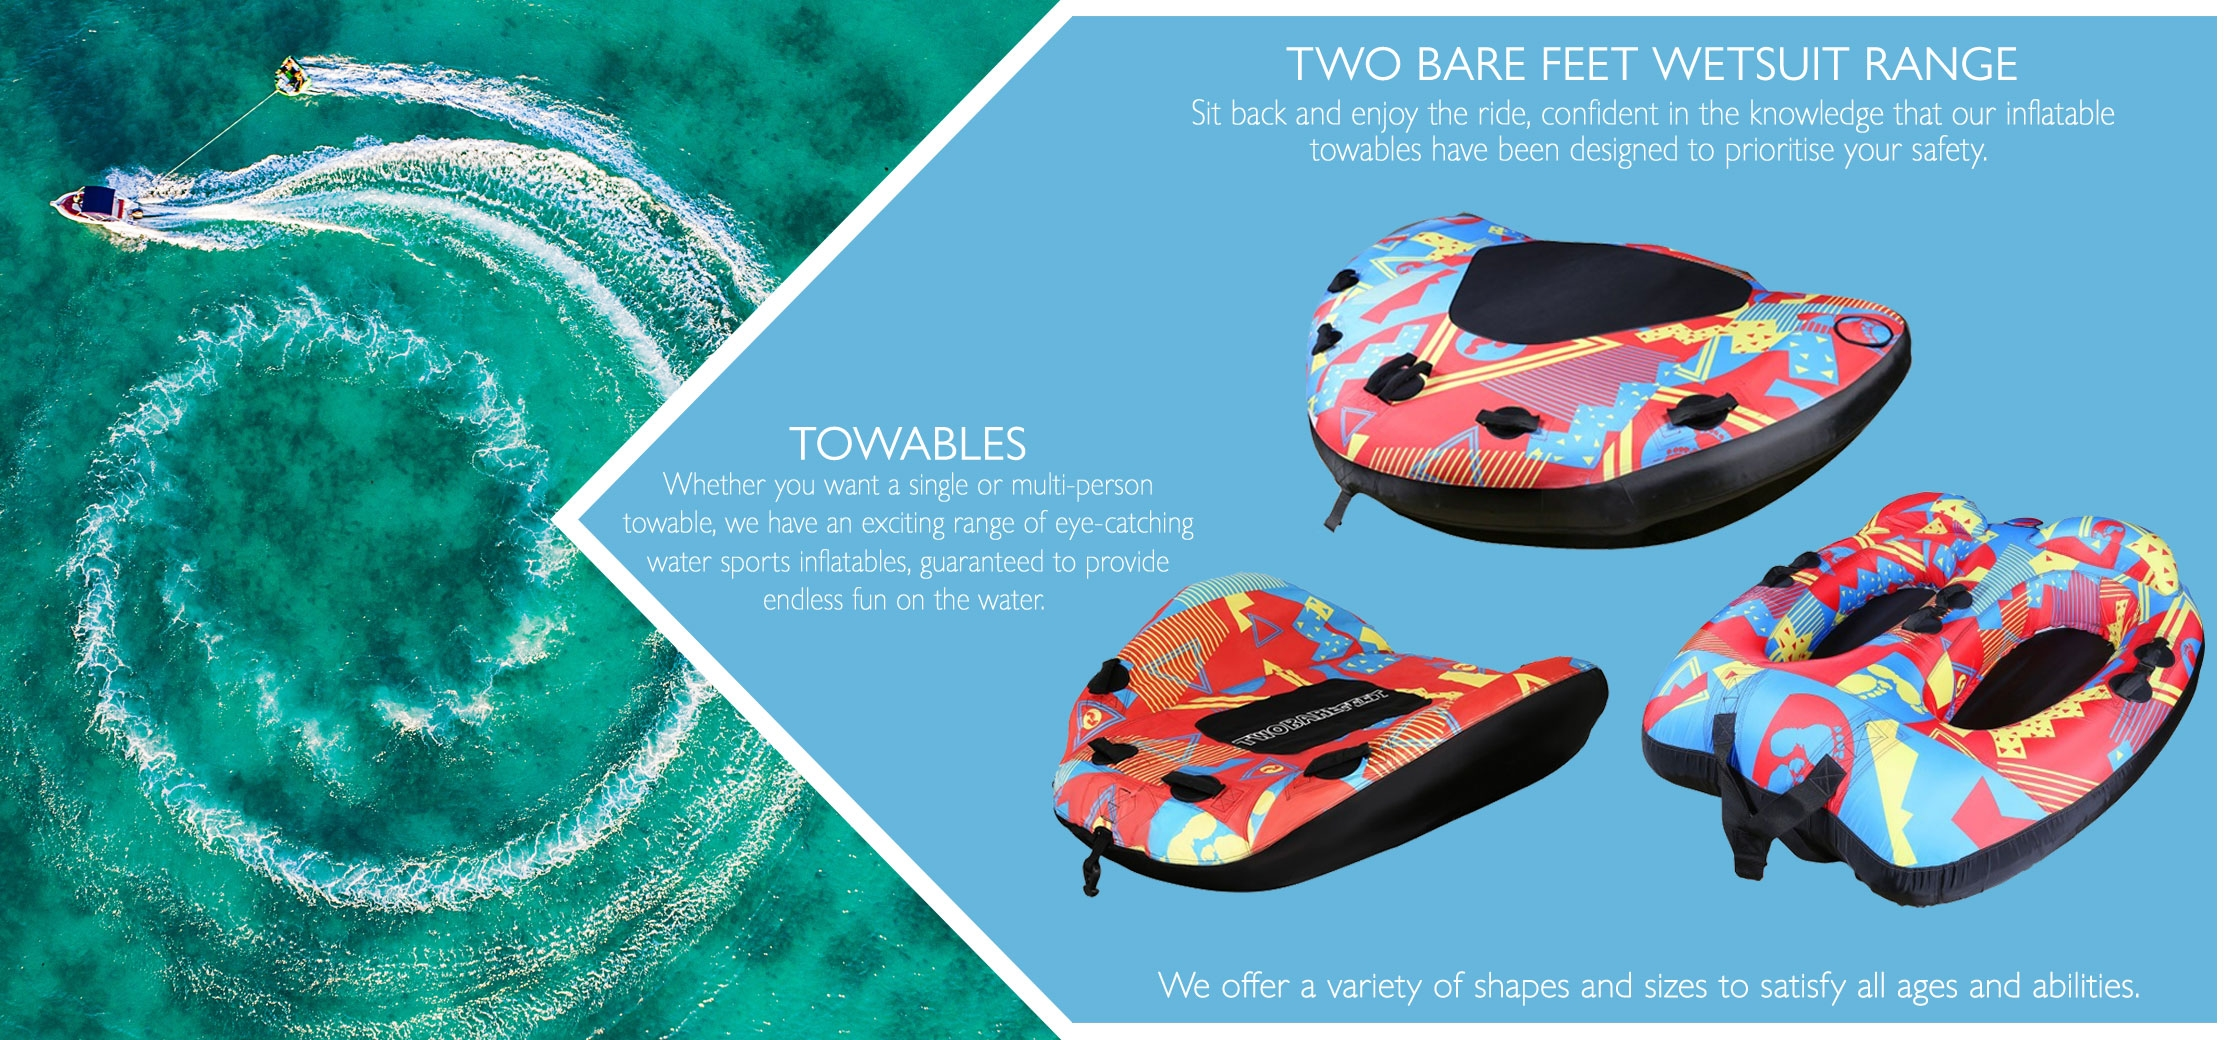 Towable products